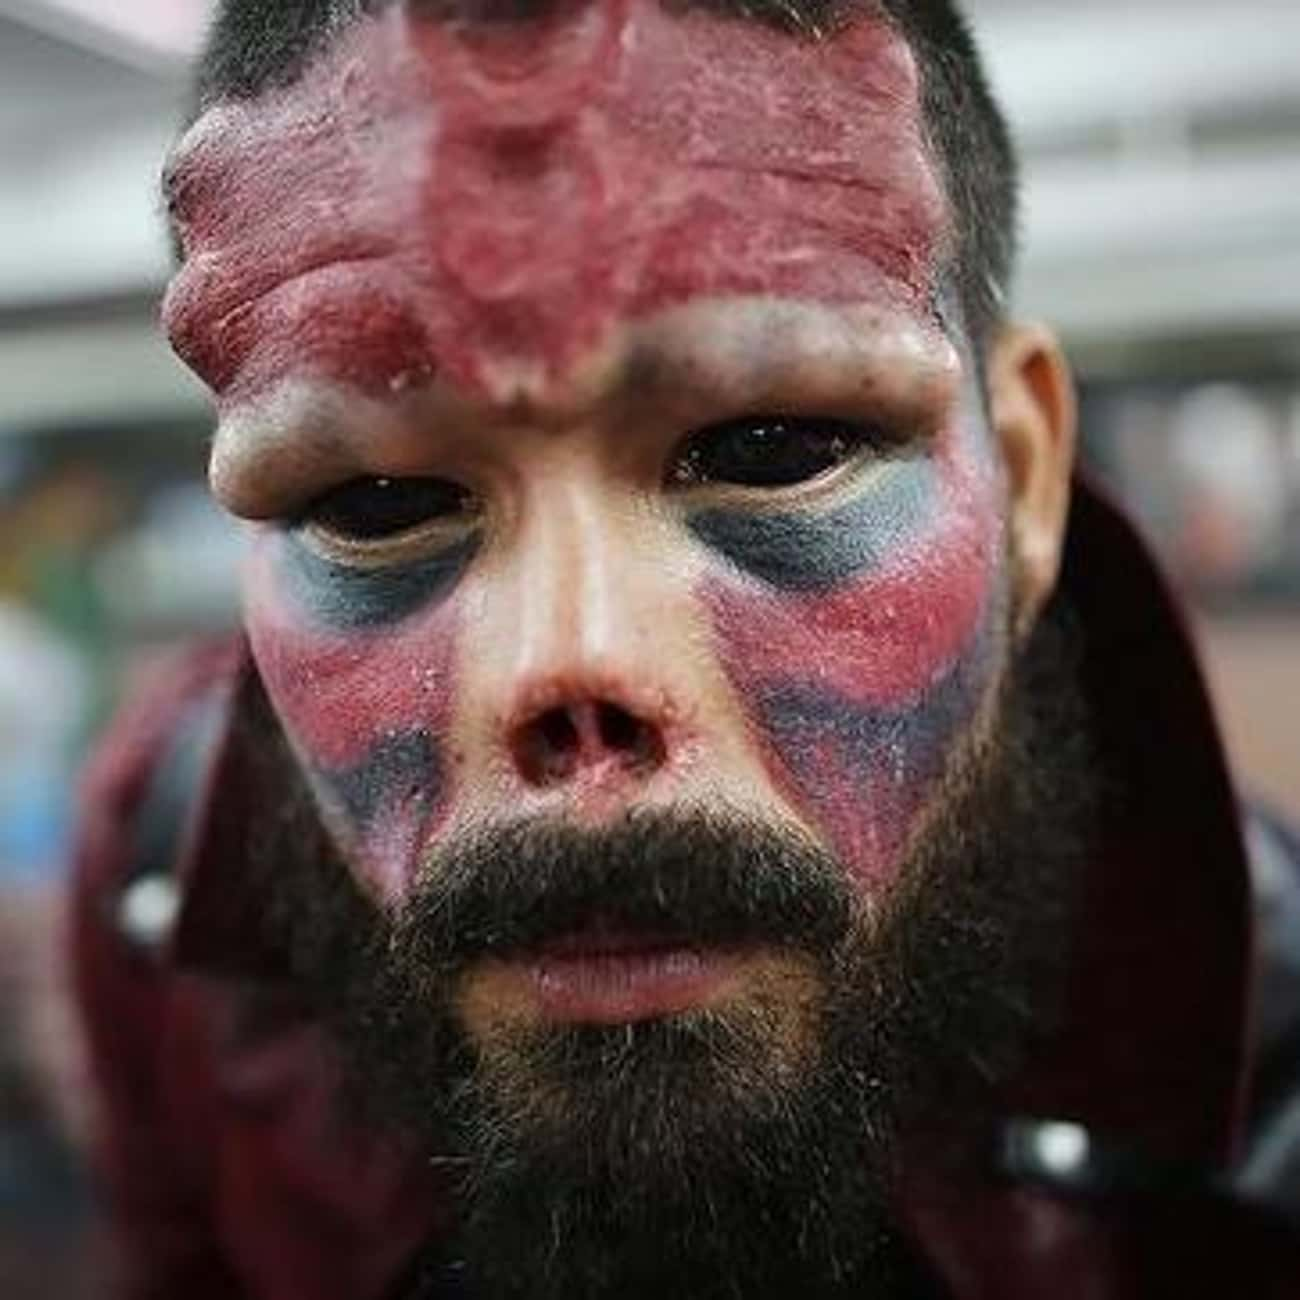 Henry Damon's Red Skull Modifi is listed (or ranked) 1 on the list The Most Extreme Body Modifications Ever